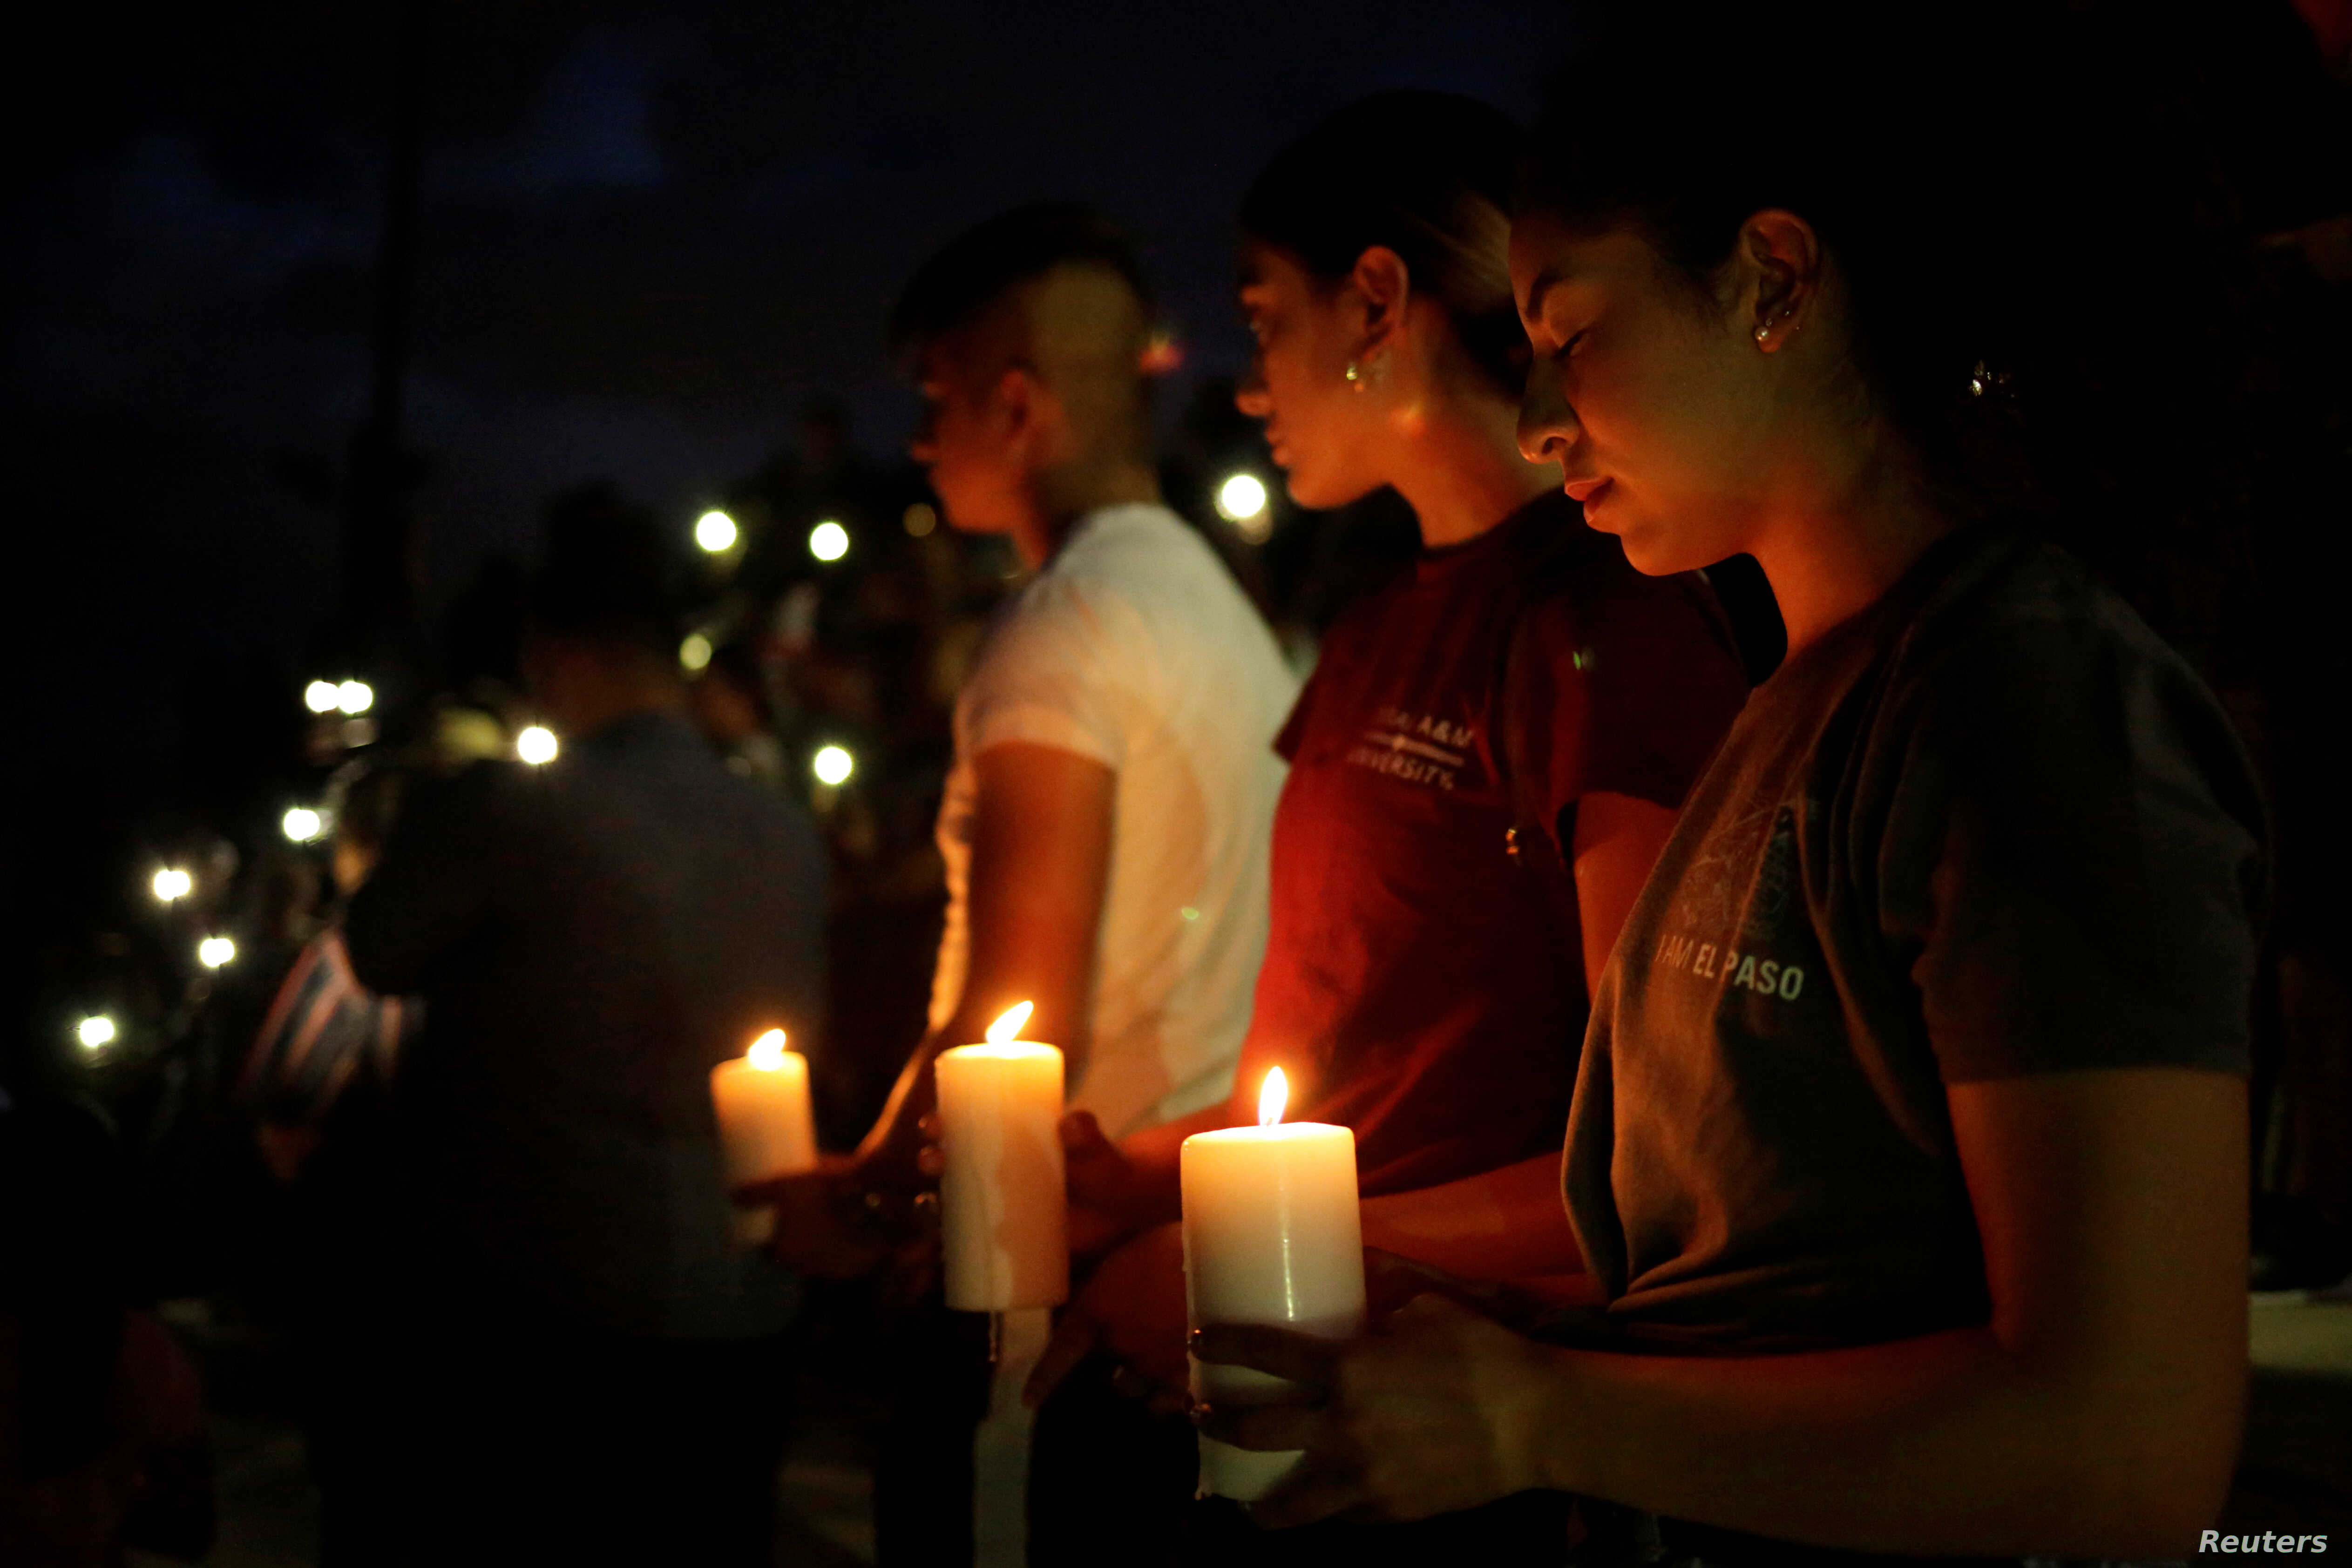 Texas Walmart Shooting Investigated as Hate Crime | Voice of